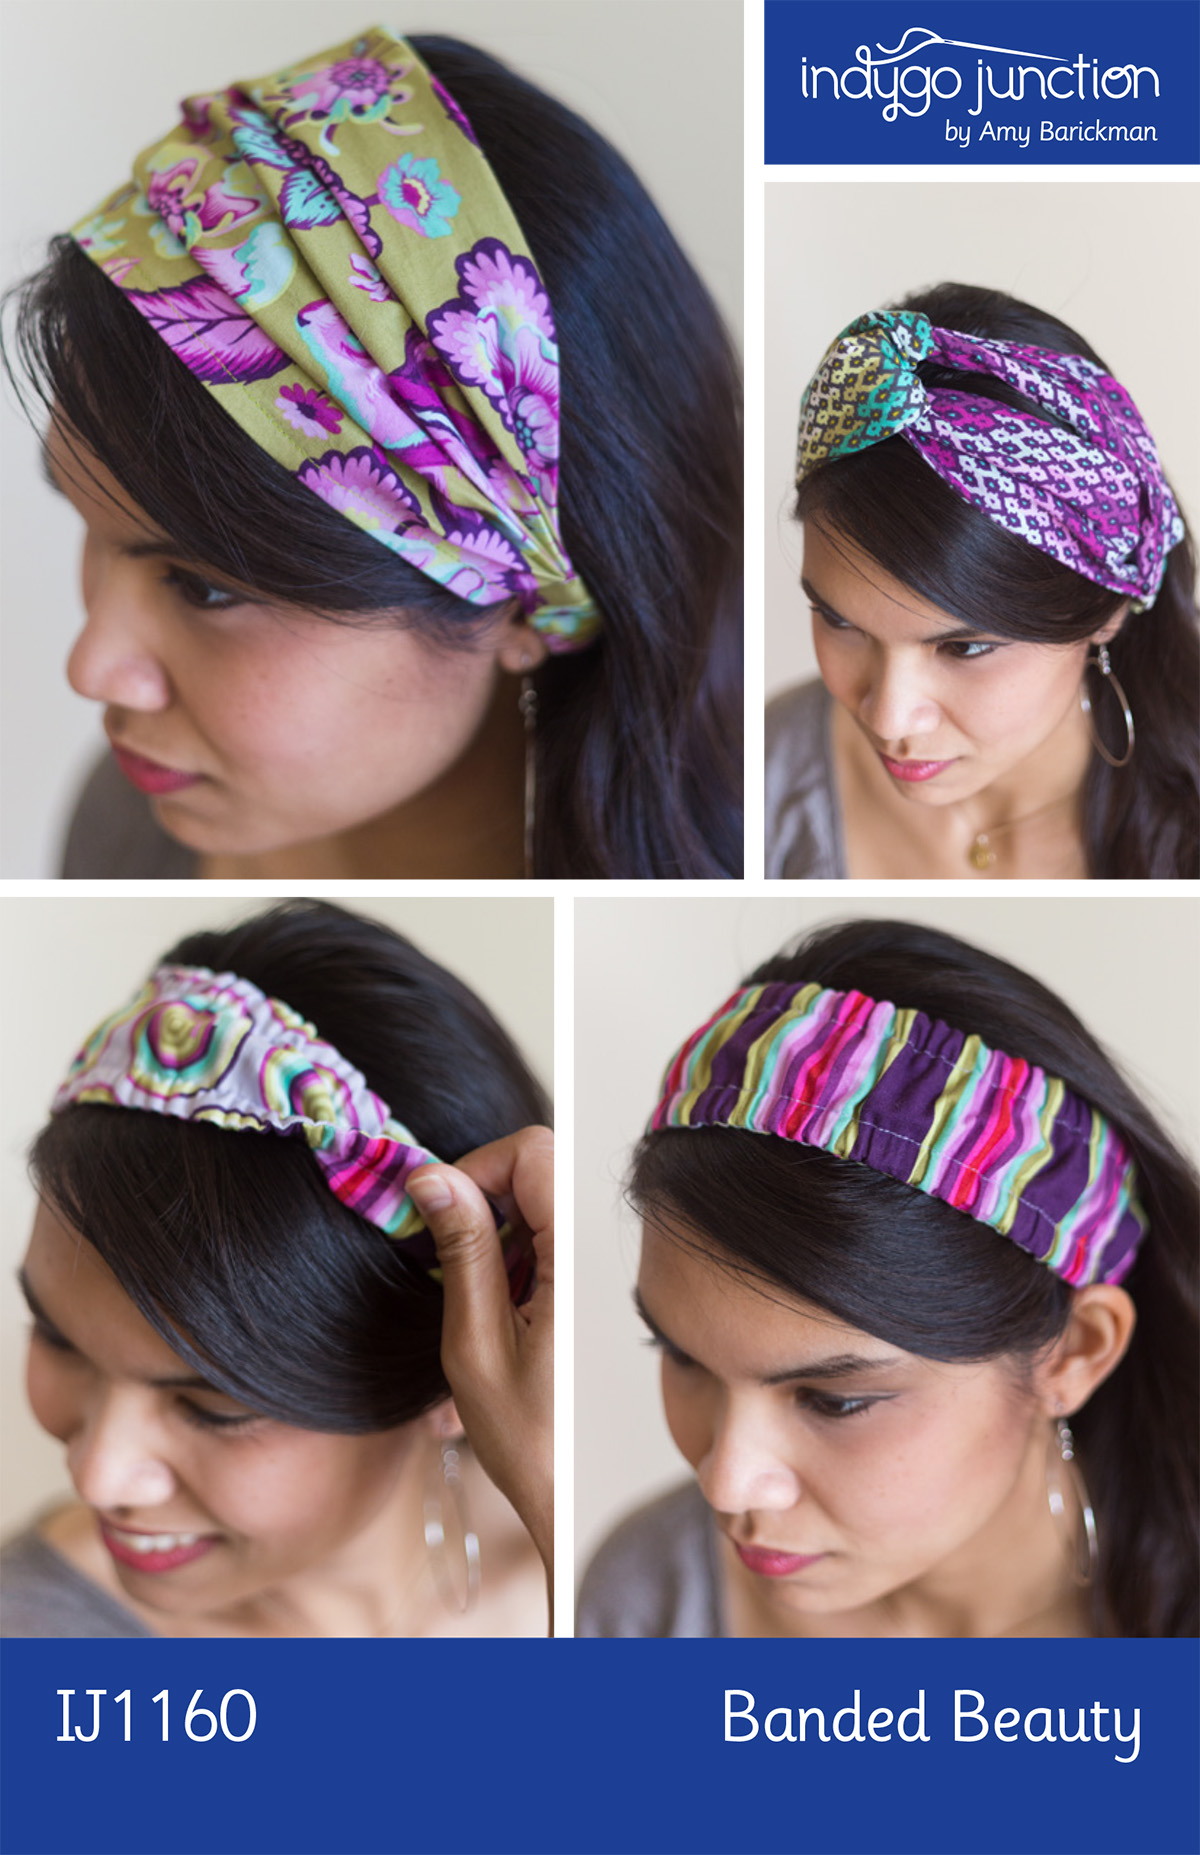 Banded Beauty Headbands